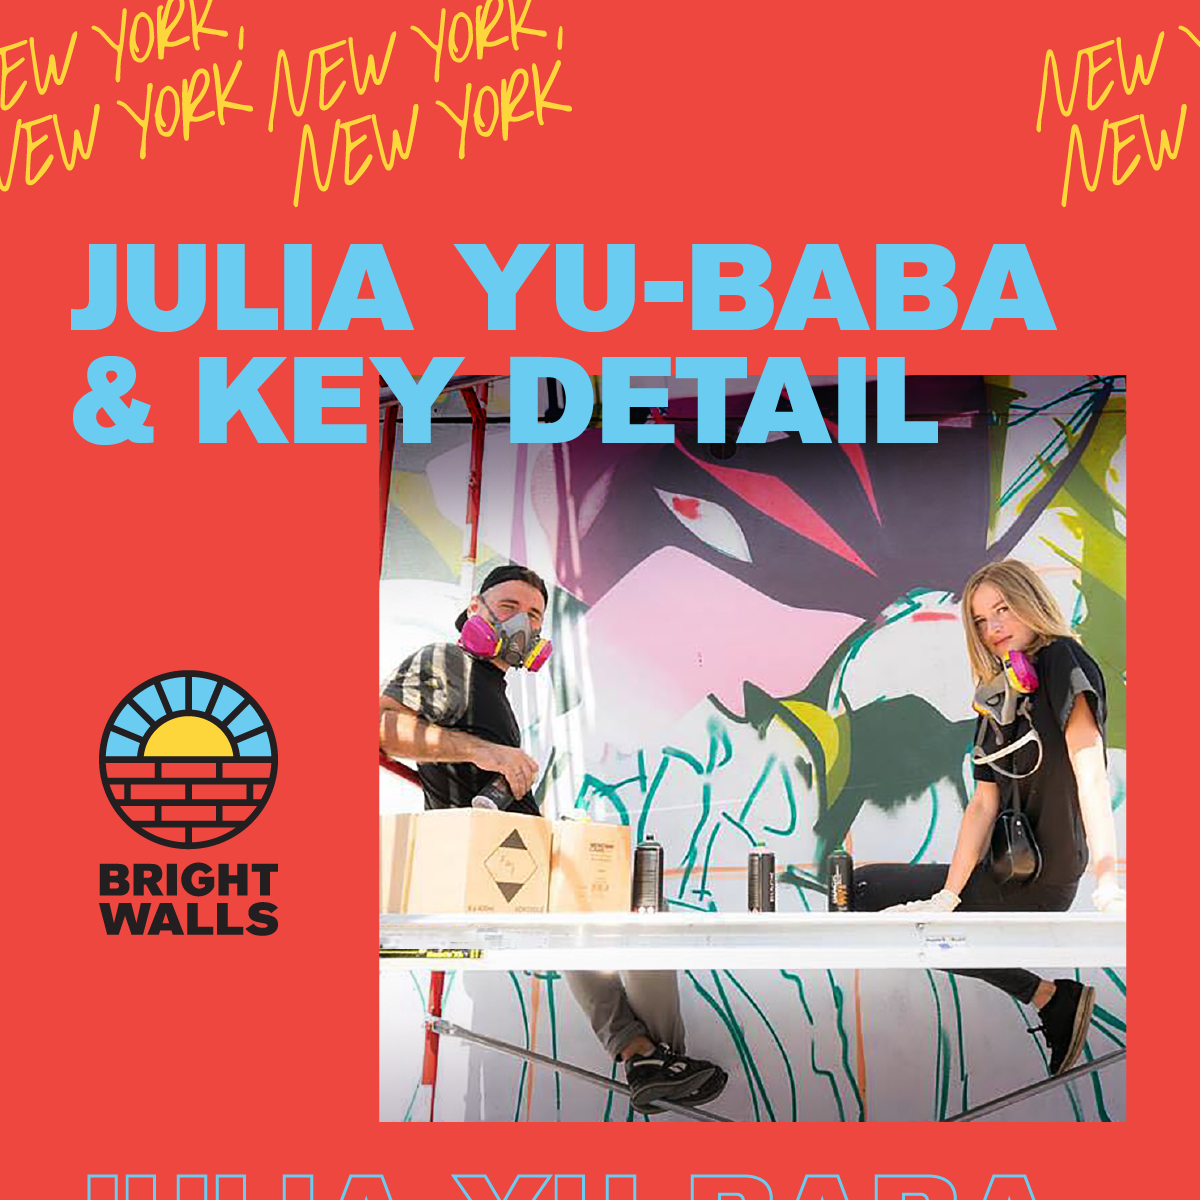 Julia YU-BABA& KEY DETAILNew York, New York - Meet Julia YU-BABA and KEY DETAIL, a husband and wife mural artist duo from Minsk, Belarus, currently living and working in New York City.YU-BABA and KEY DETAIL both studied Architecture and earned degrees from the Belarusian National Technical University. They combine their education and street art skills to create murals all over the world.Most of YU-BABA's murals are female portraits revealing women's energy, confidence and beauty. Her style involves gently folkloric or magical dream-like themes with a purpose of making the world more beautiful through the power of imagination.KEY DETAIL's art is a balanced concentration of emotional reflections on reality.Both YU-BABA and KEY DETAIL's work have been exhibited in mural festivals and galleries across the world and published in books and magazines.